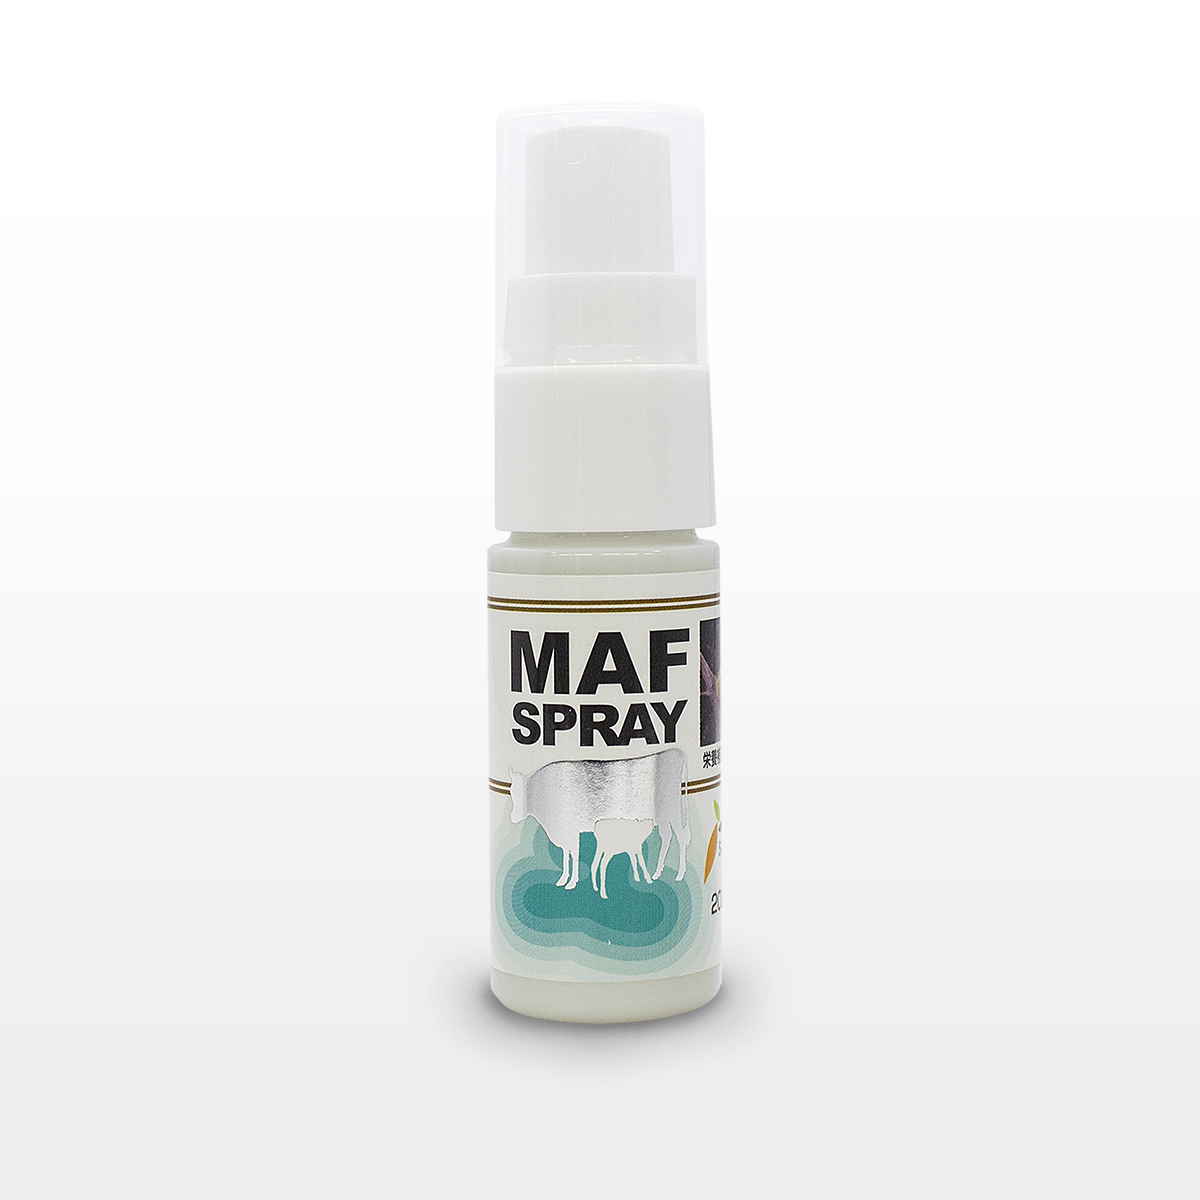 MAF SPRAY